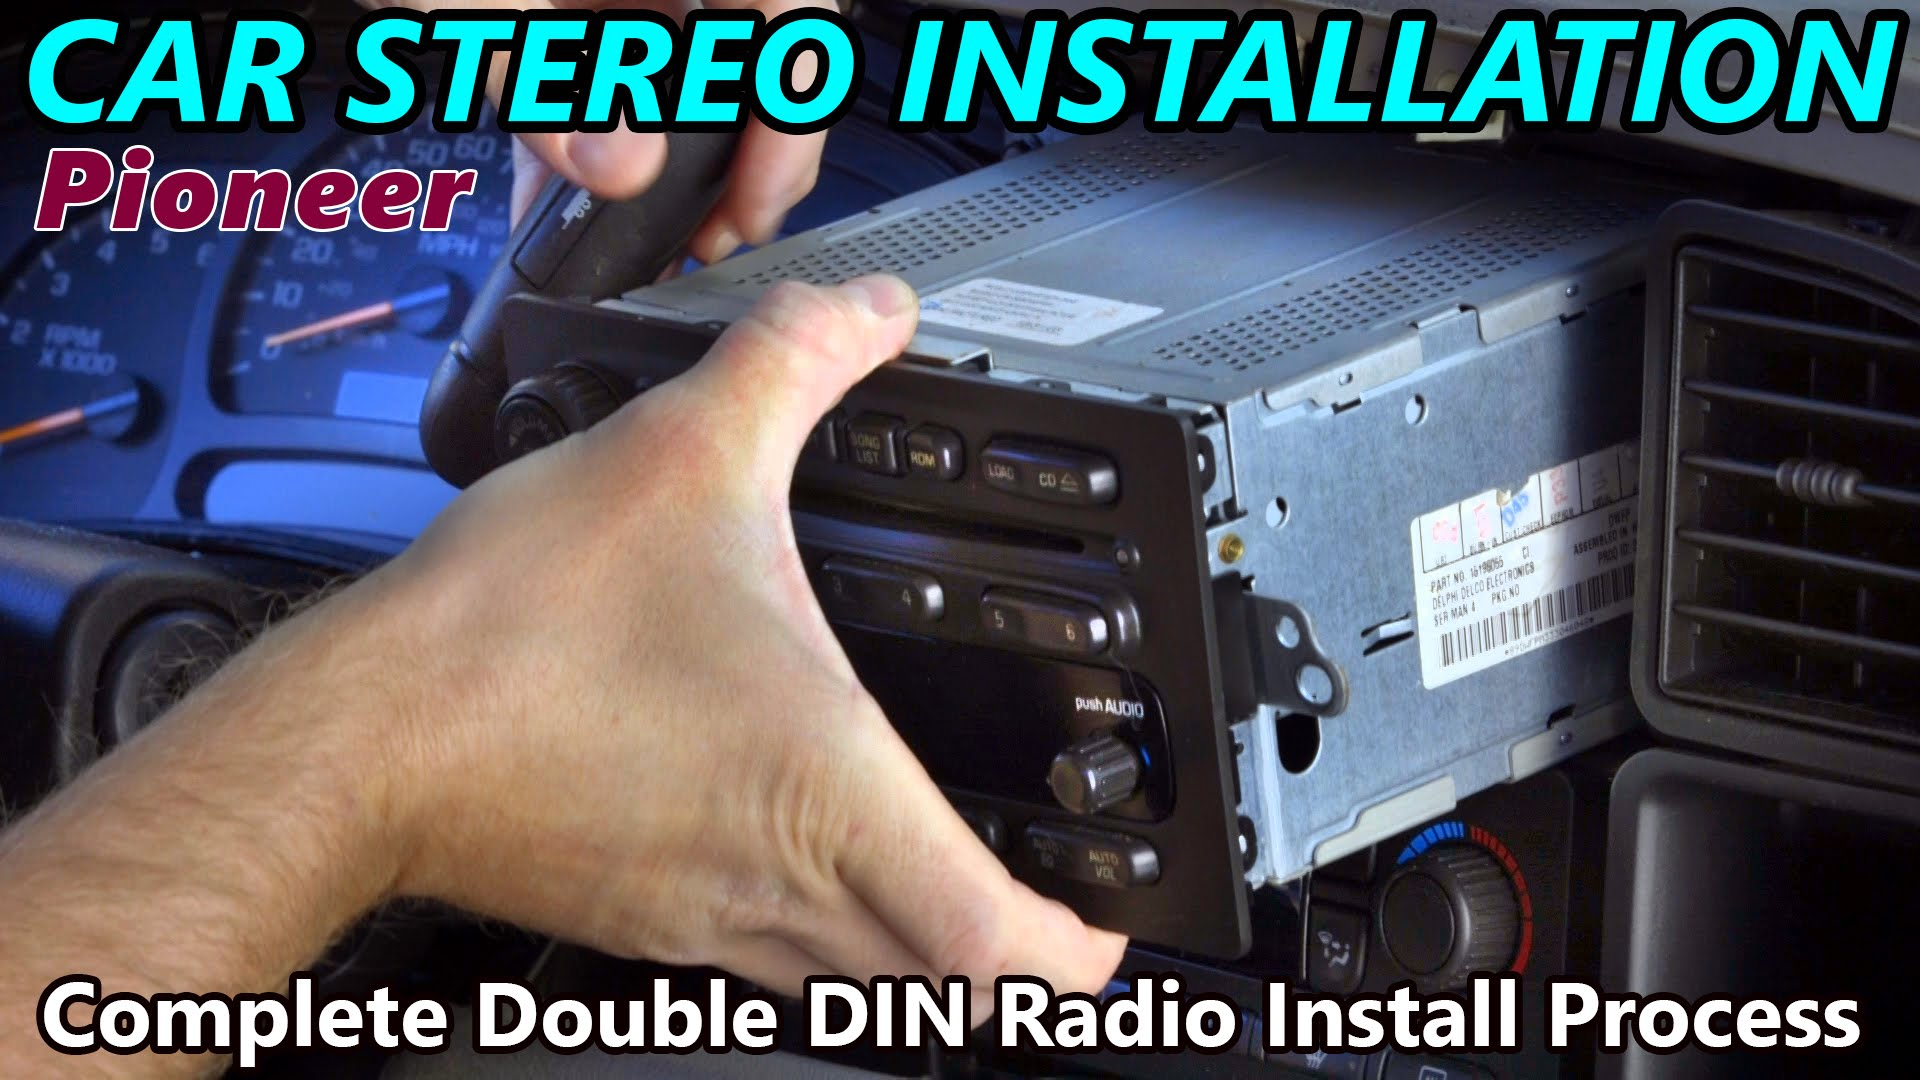 Car Stereo Installation Wiring D on 2000 Malibu Stereo Wiring Diagram